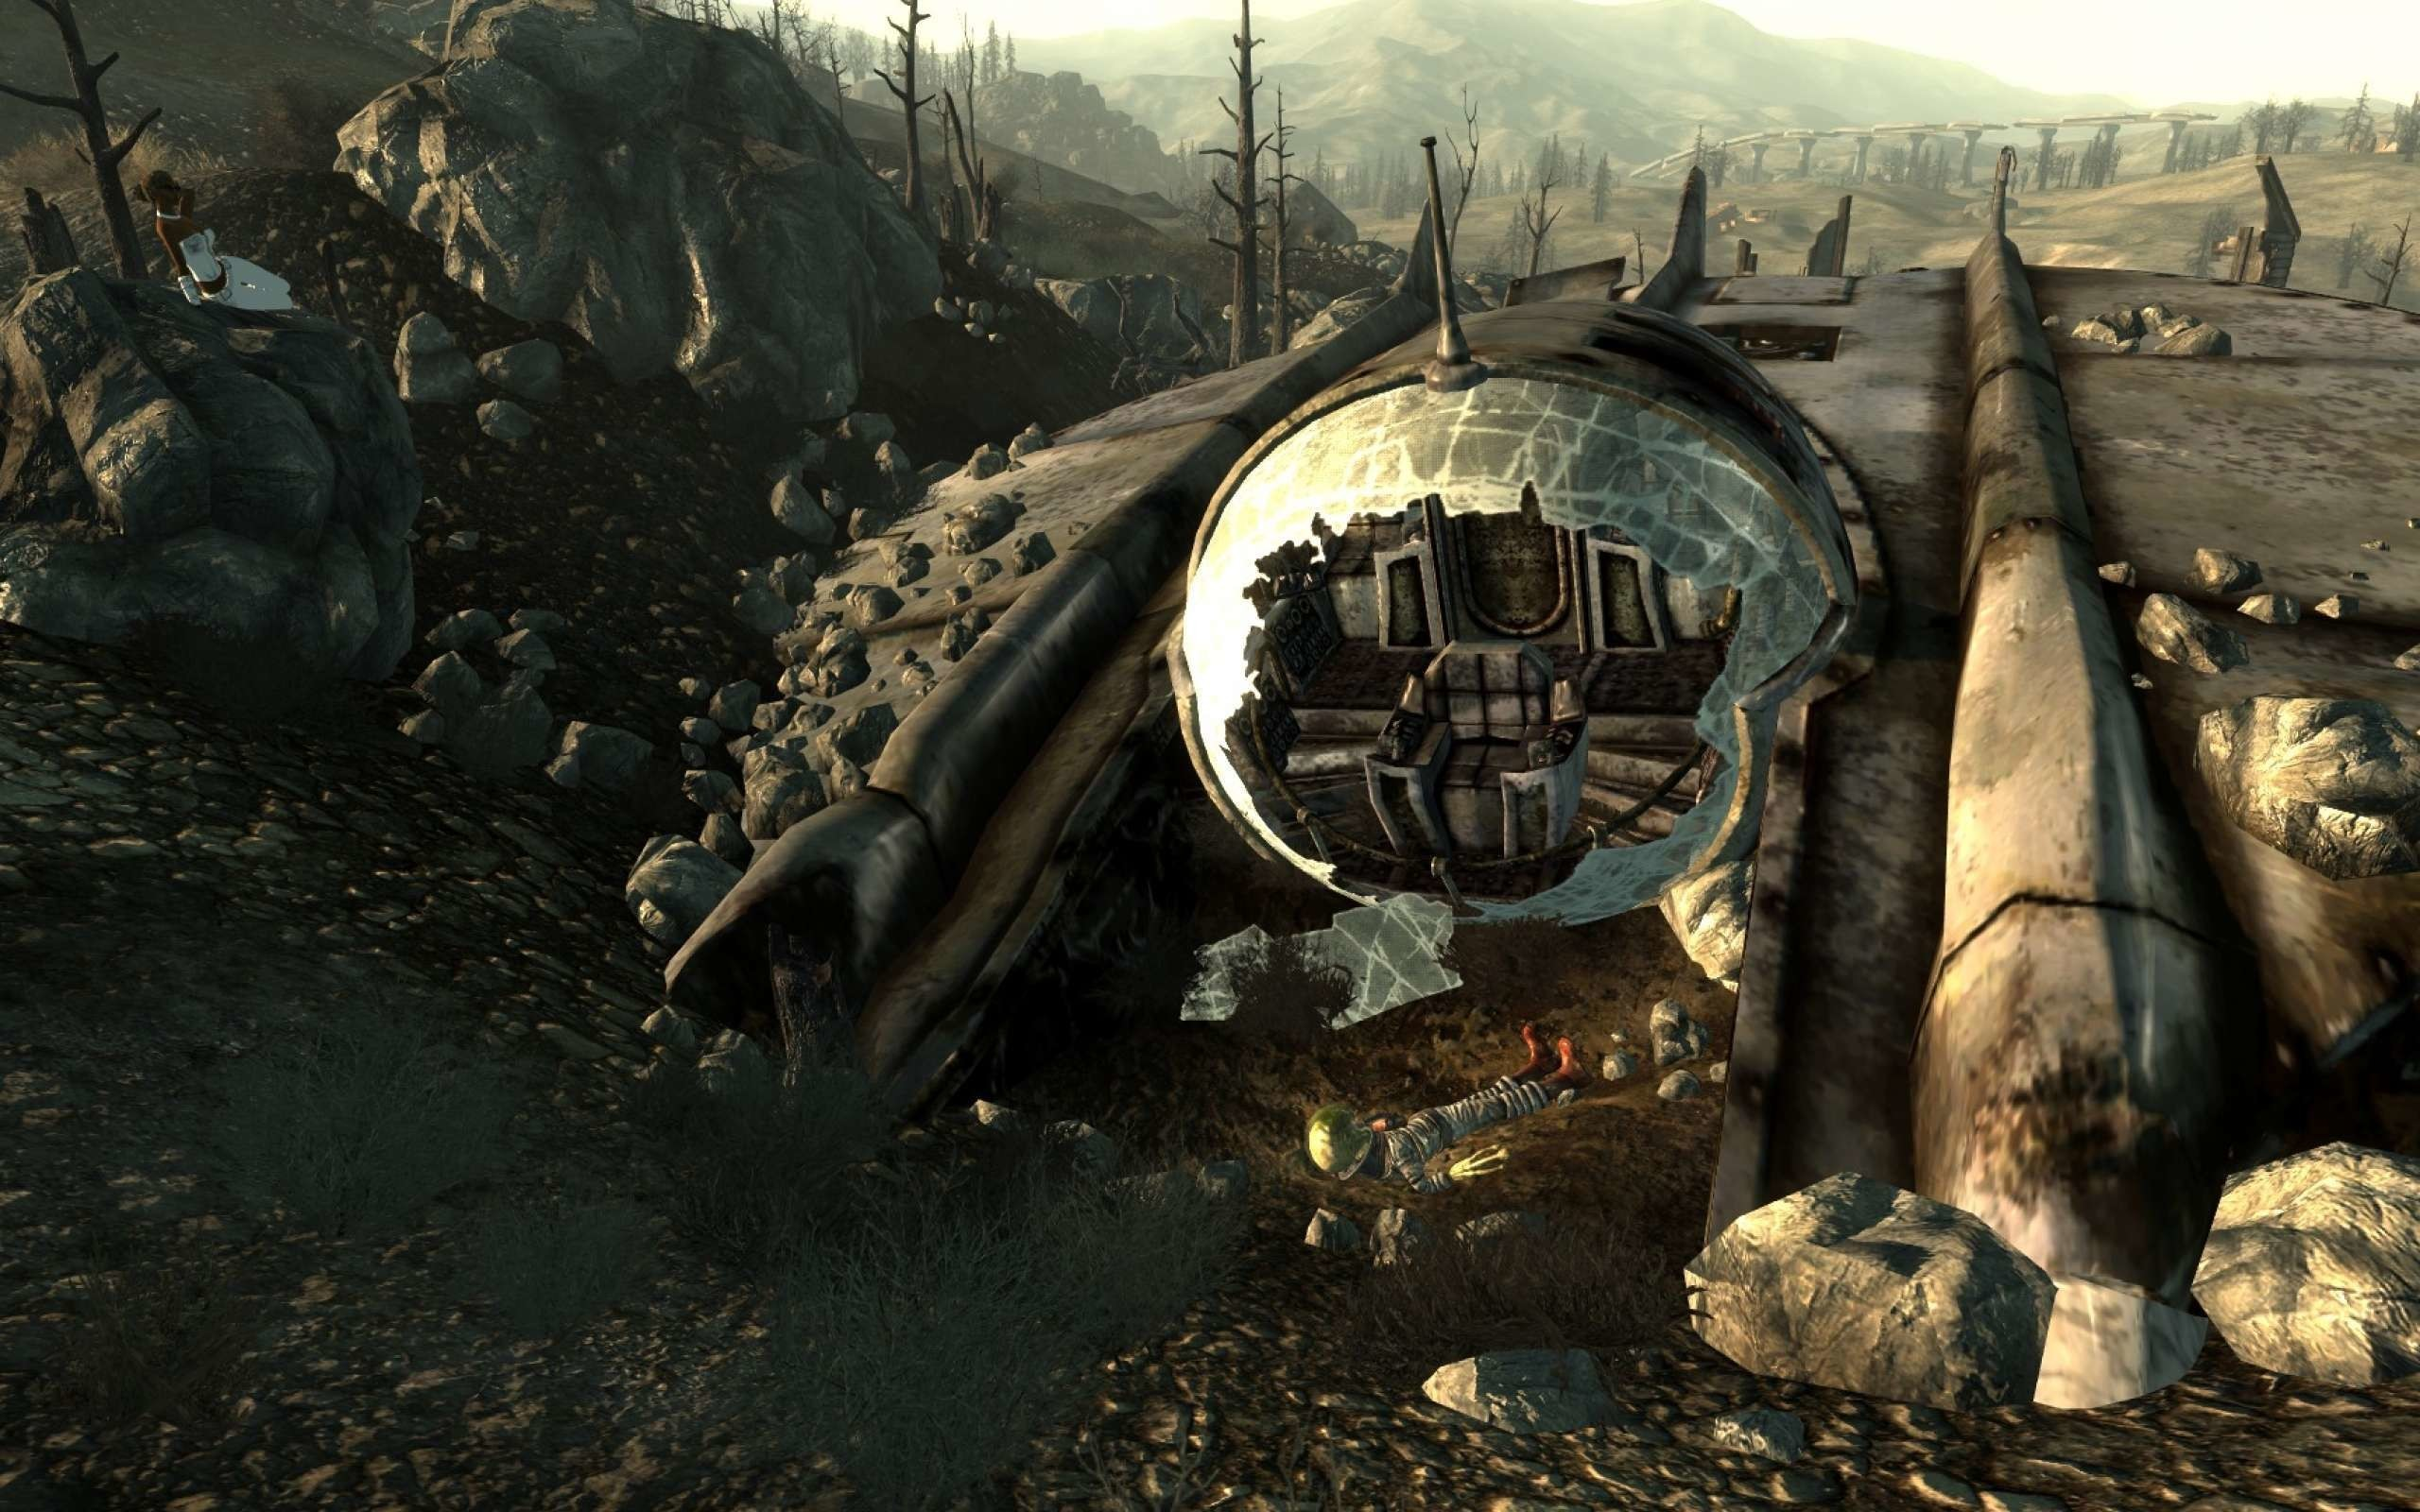 2560x1600 1920x1080 Full HD 1080p Fallout Wallpapers HD, Desktop Backgrounds 1920x1080